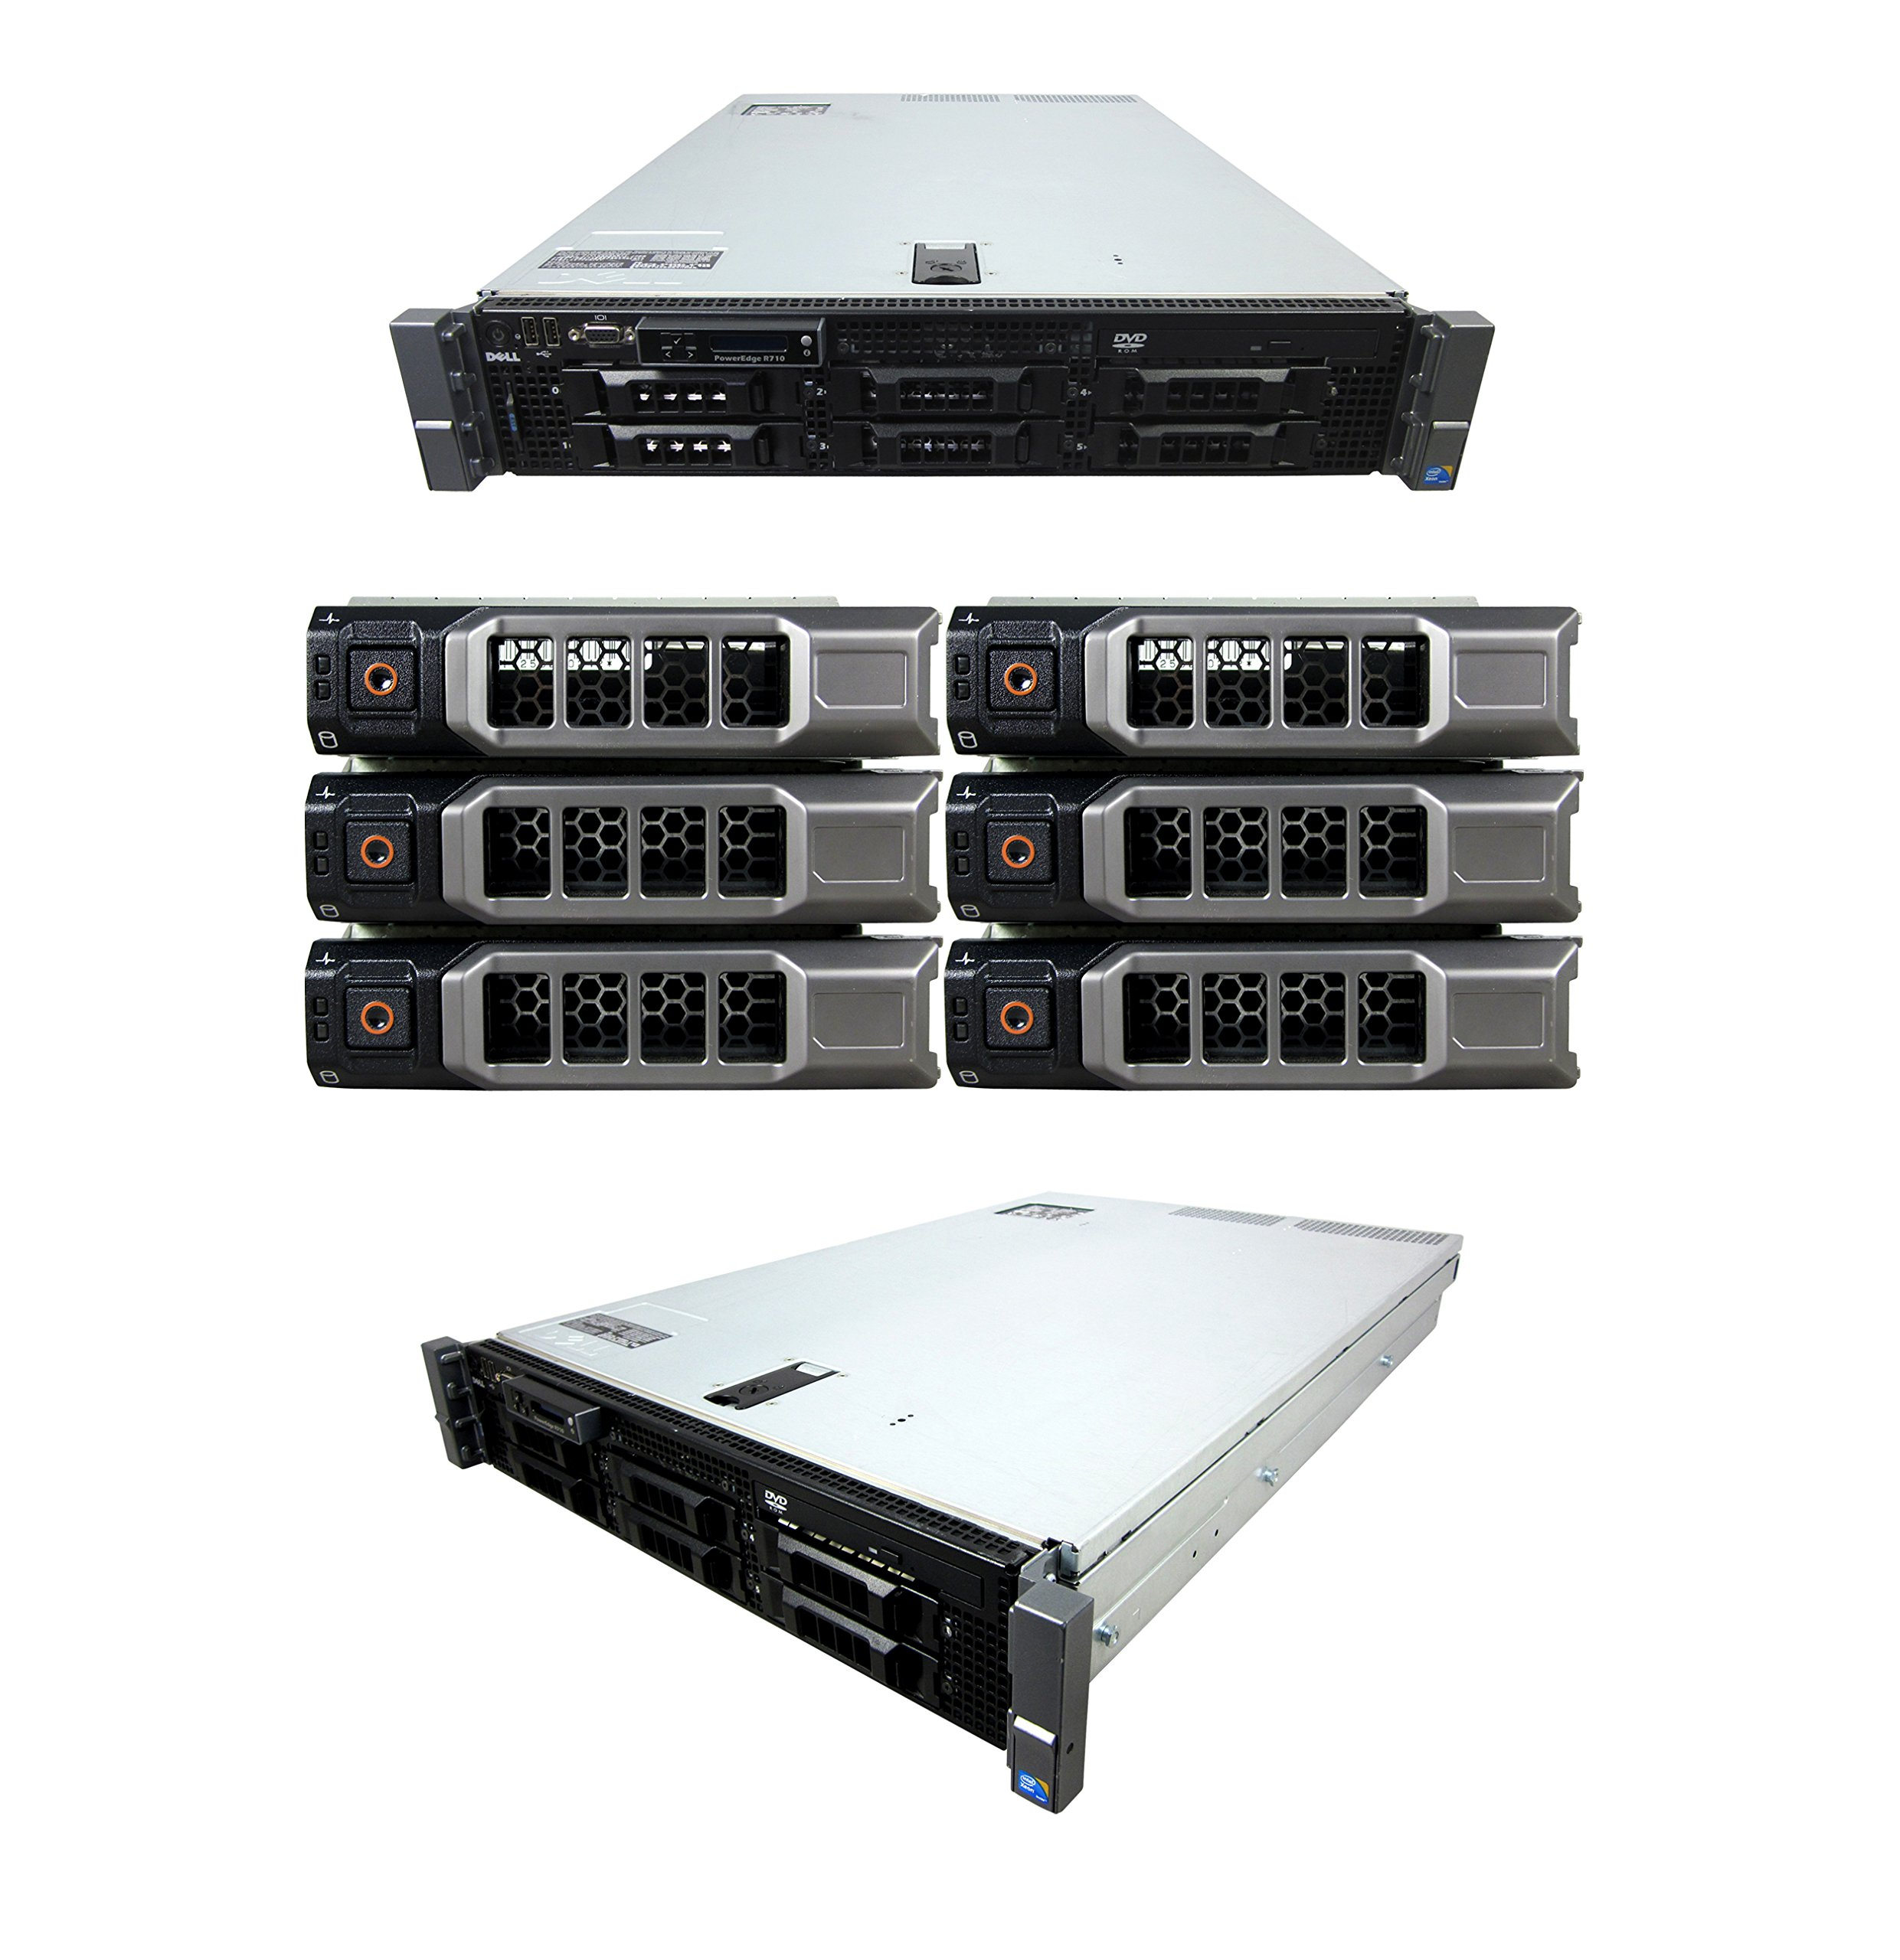 High-End Virtualization Server 12-Core 128GB RAM 12TB RAID Dell PowerEdge R710 (Certified Refurbished) by TechMikeNY (Image #1)